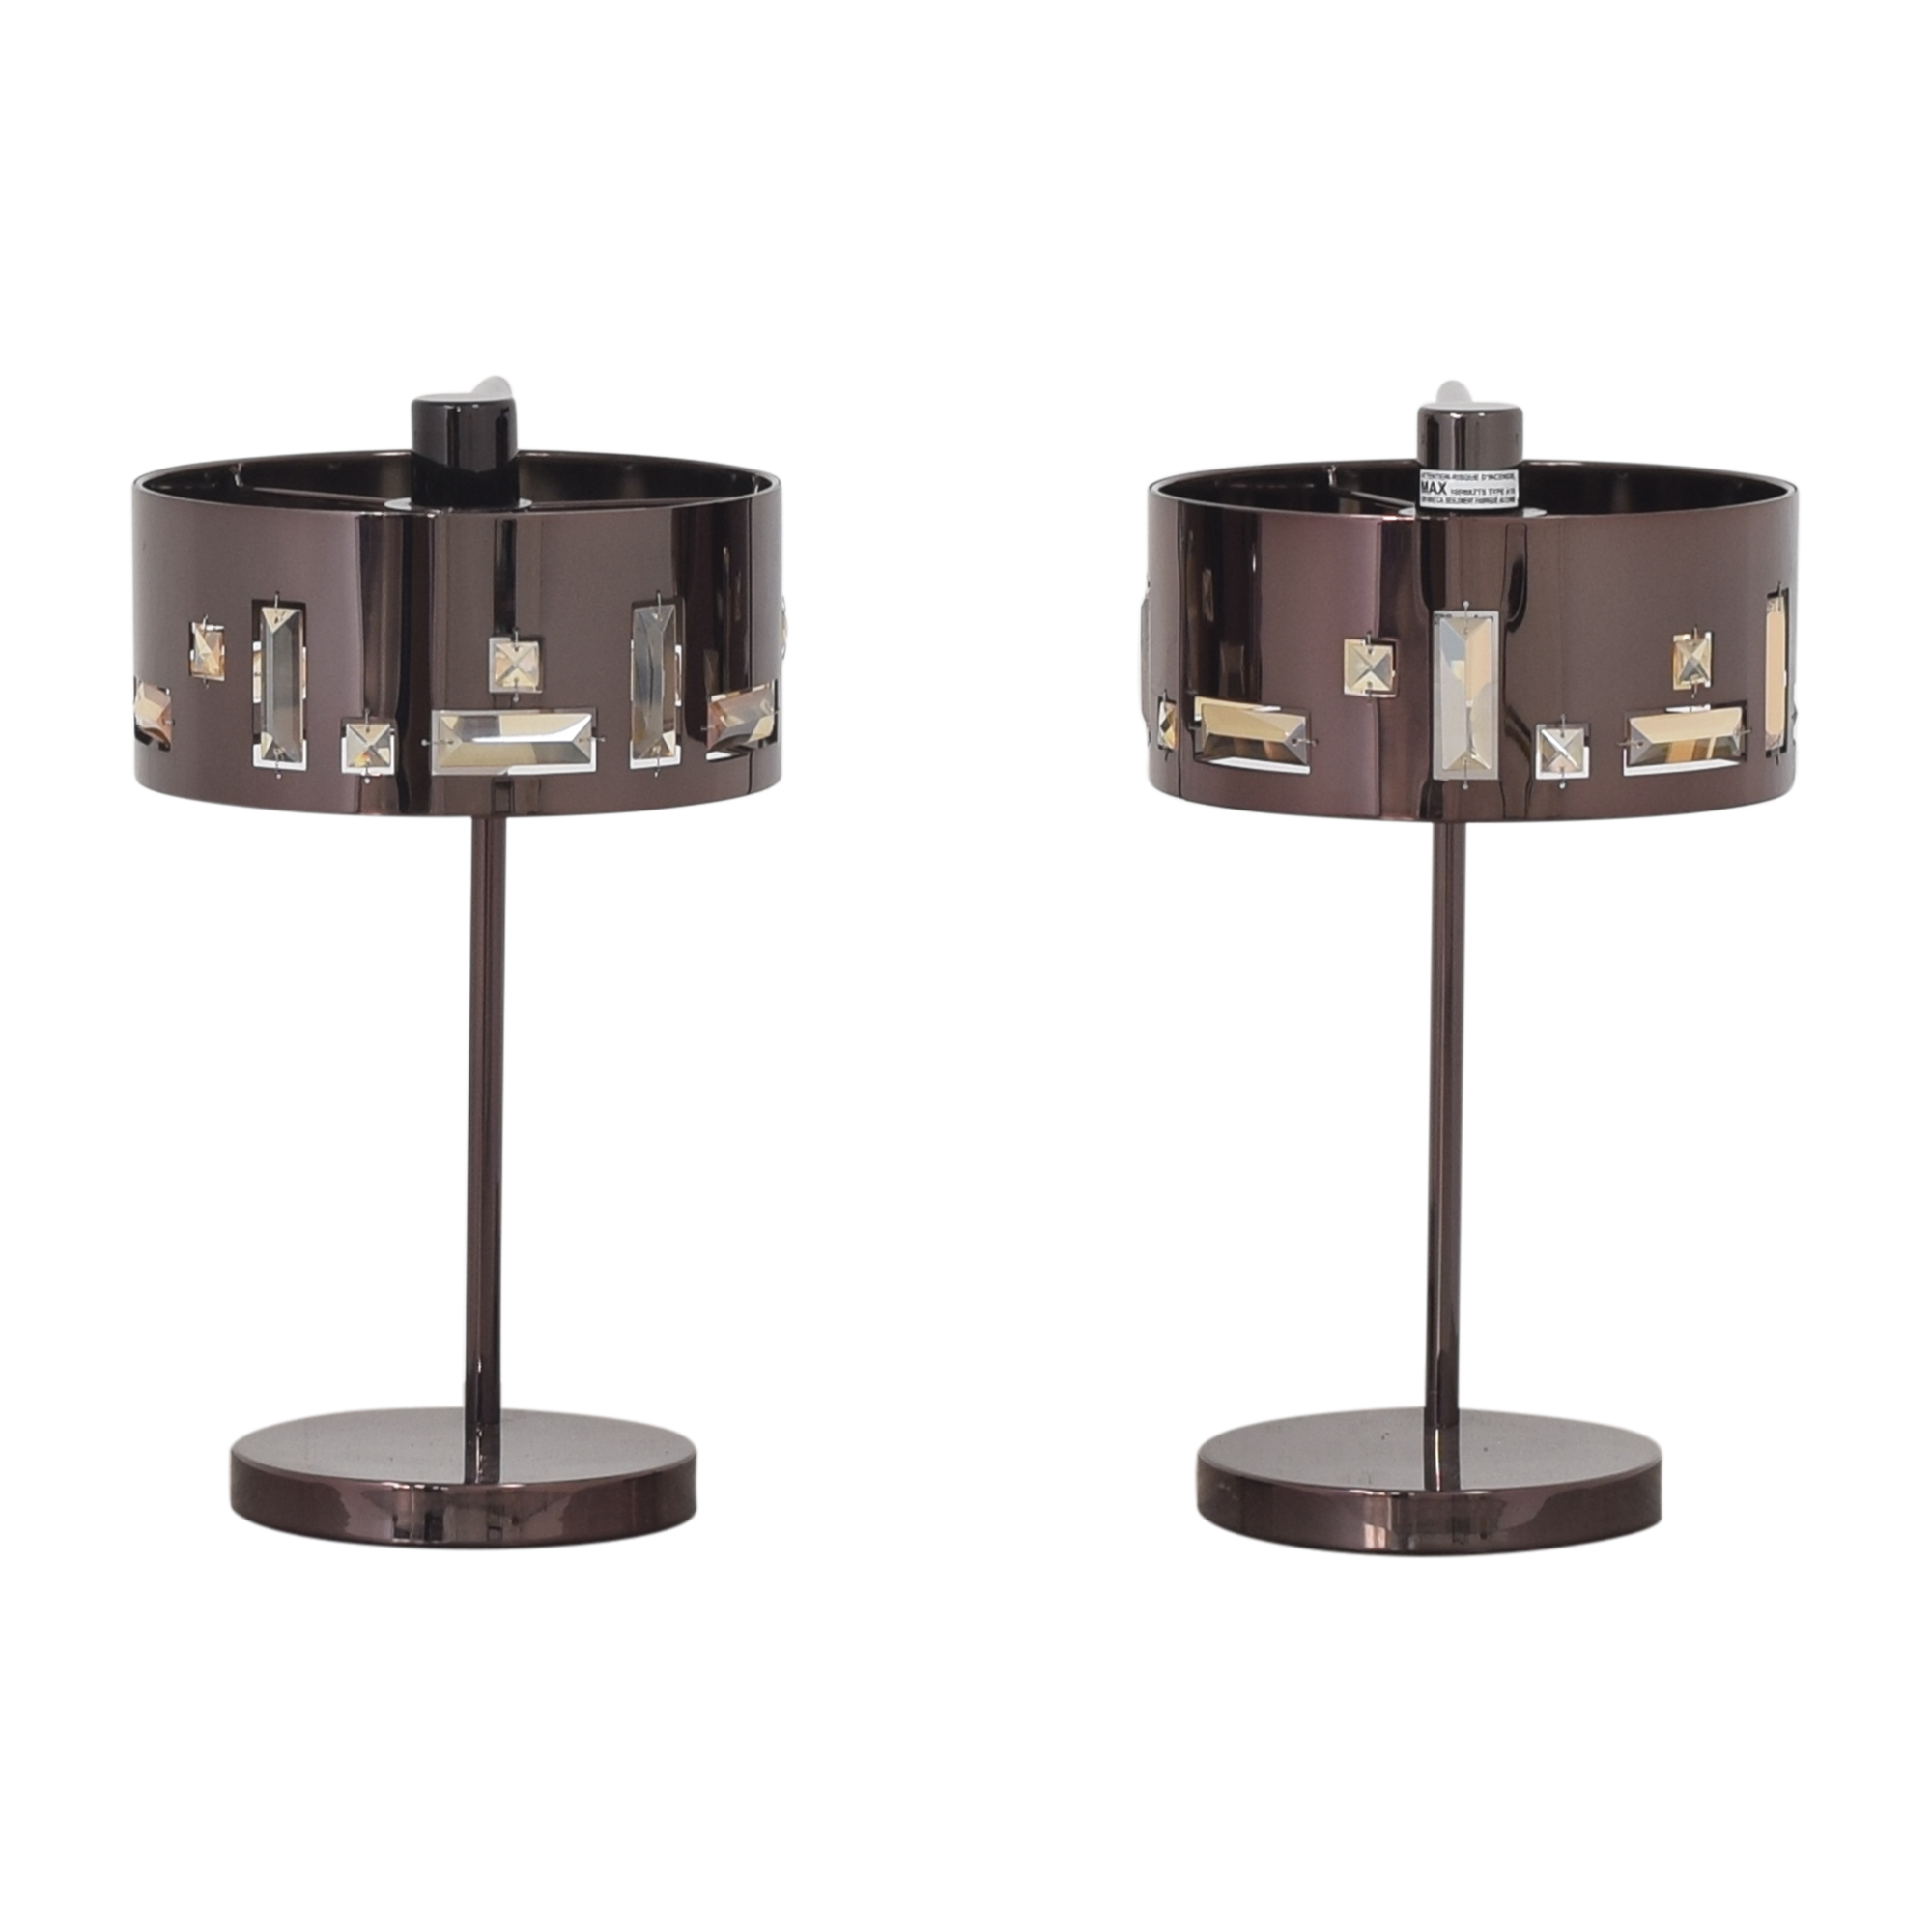 George Kovacs George Kovacs Bling Bang Table Lamps nj